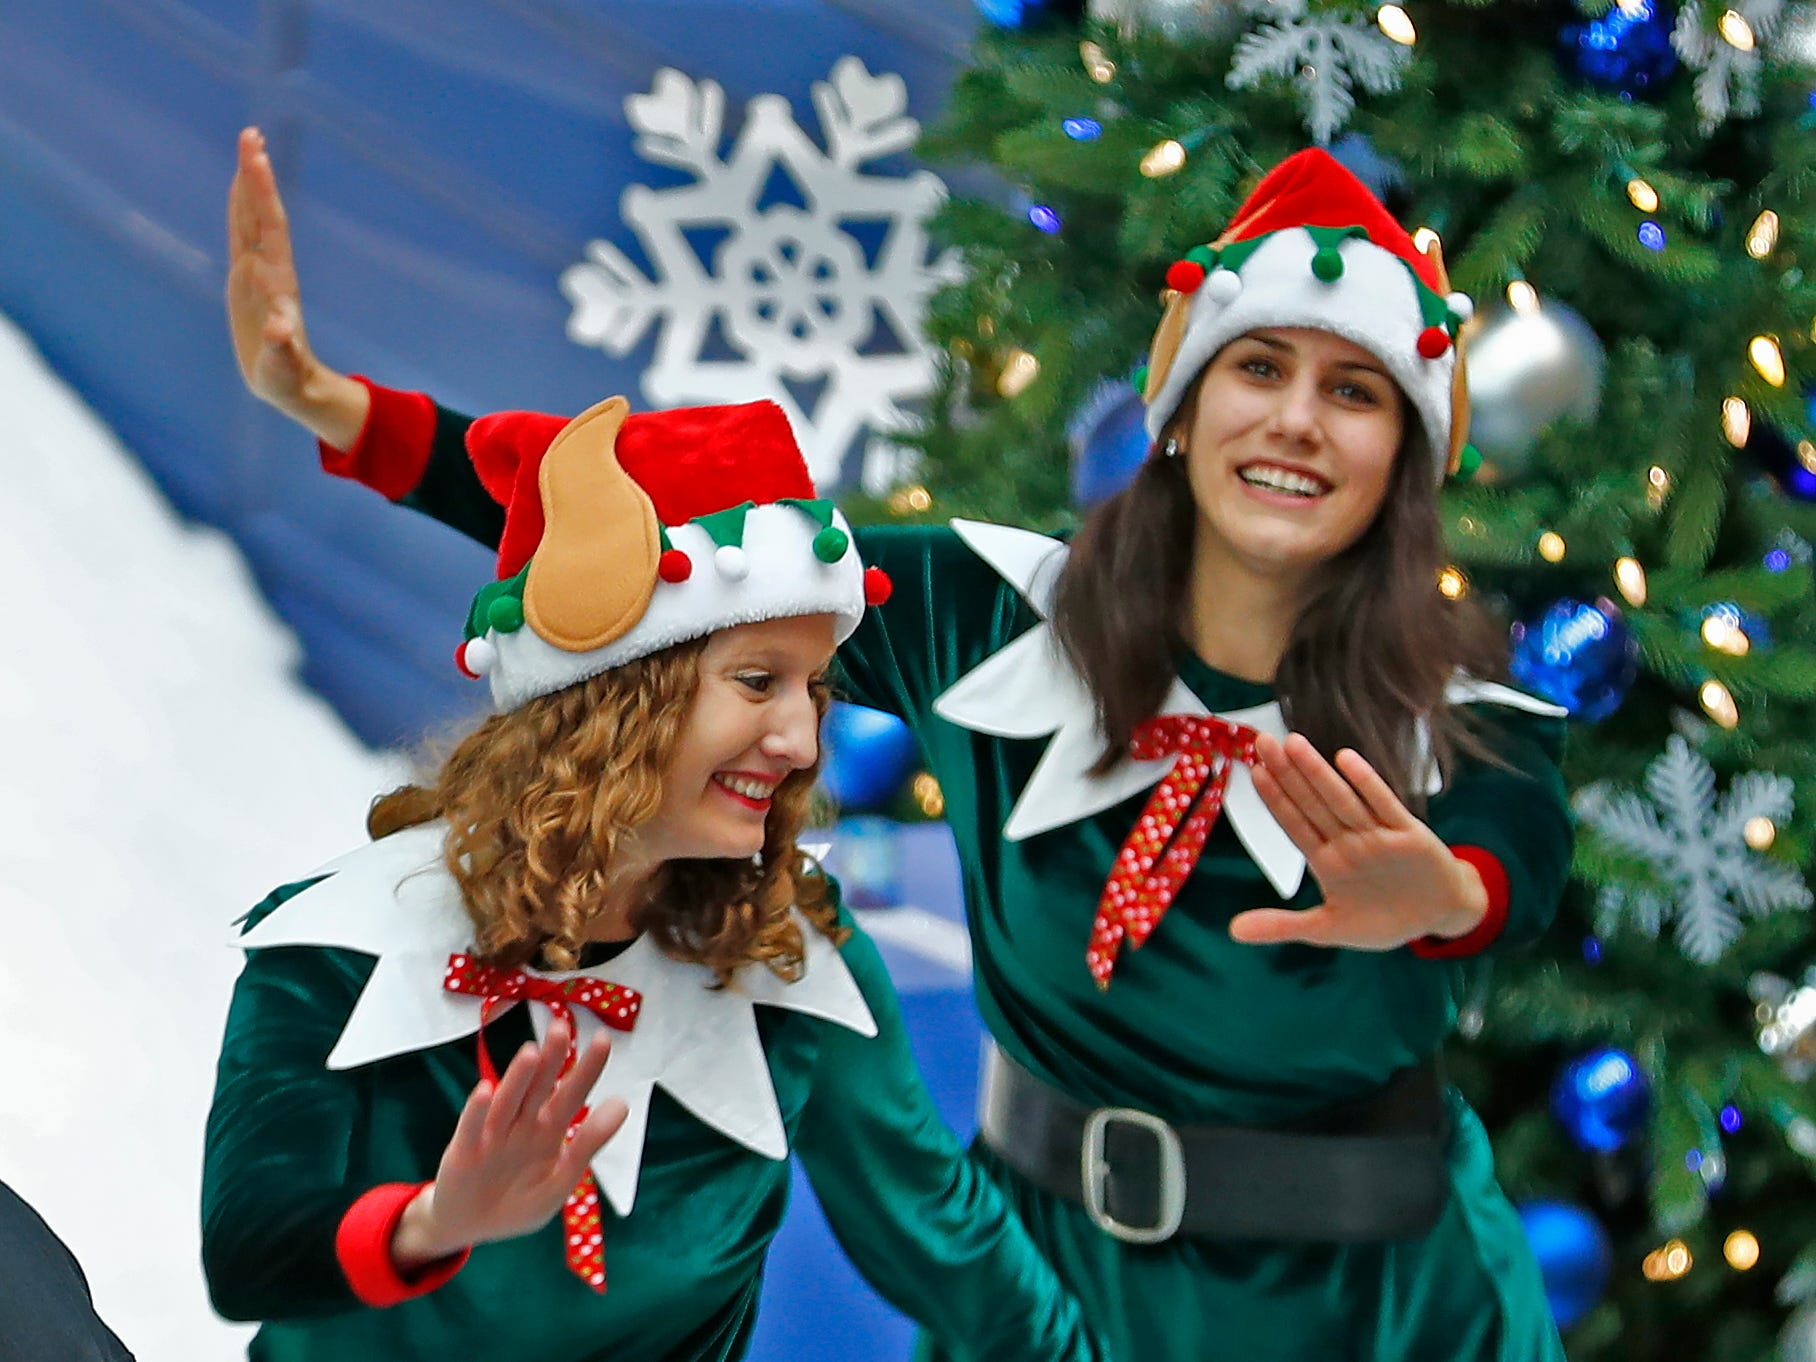 Elves Jenny Holland and Mary Malooley dance at the base of the Yule Slide, during the start of Jolly Days Winter Wonderland at the Children's Museum of Indianapolis, Friday, Nov. 23, 2018.